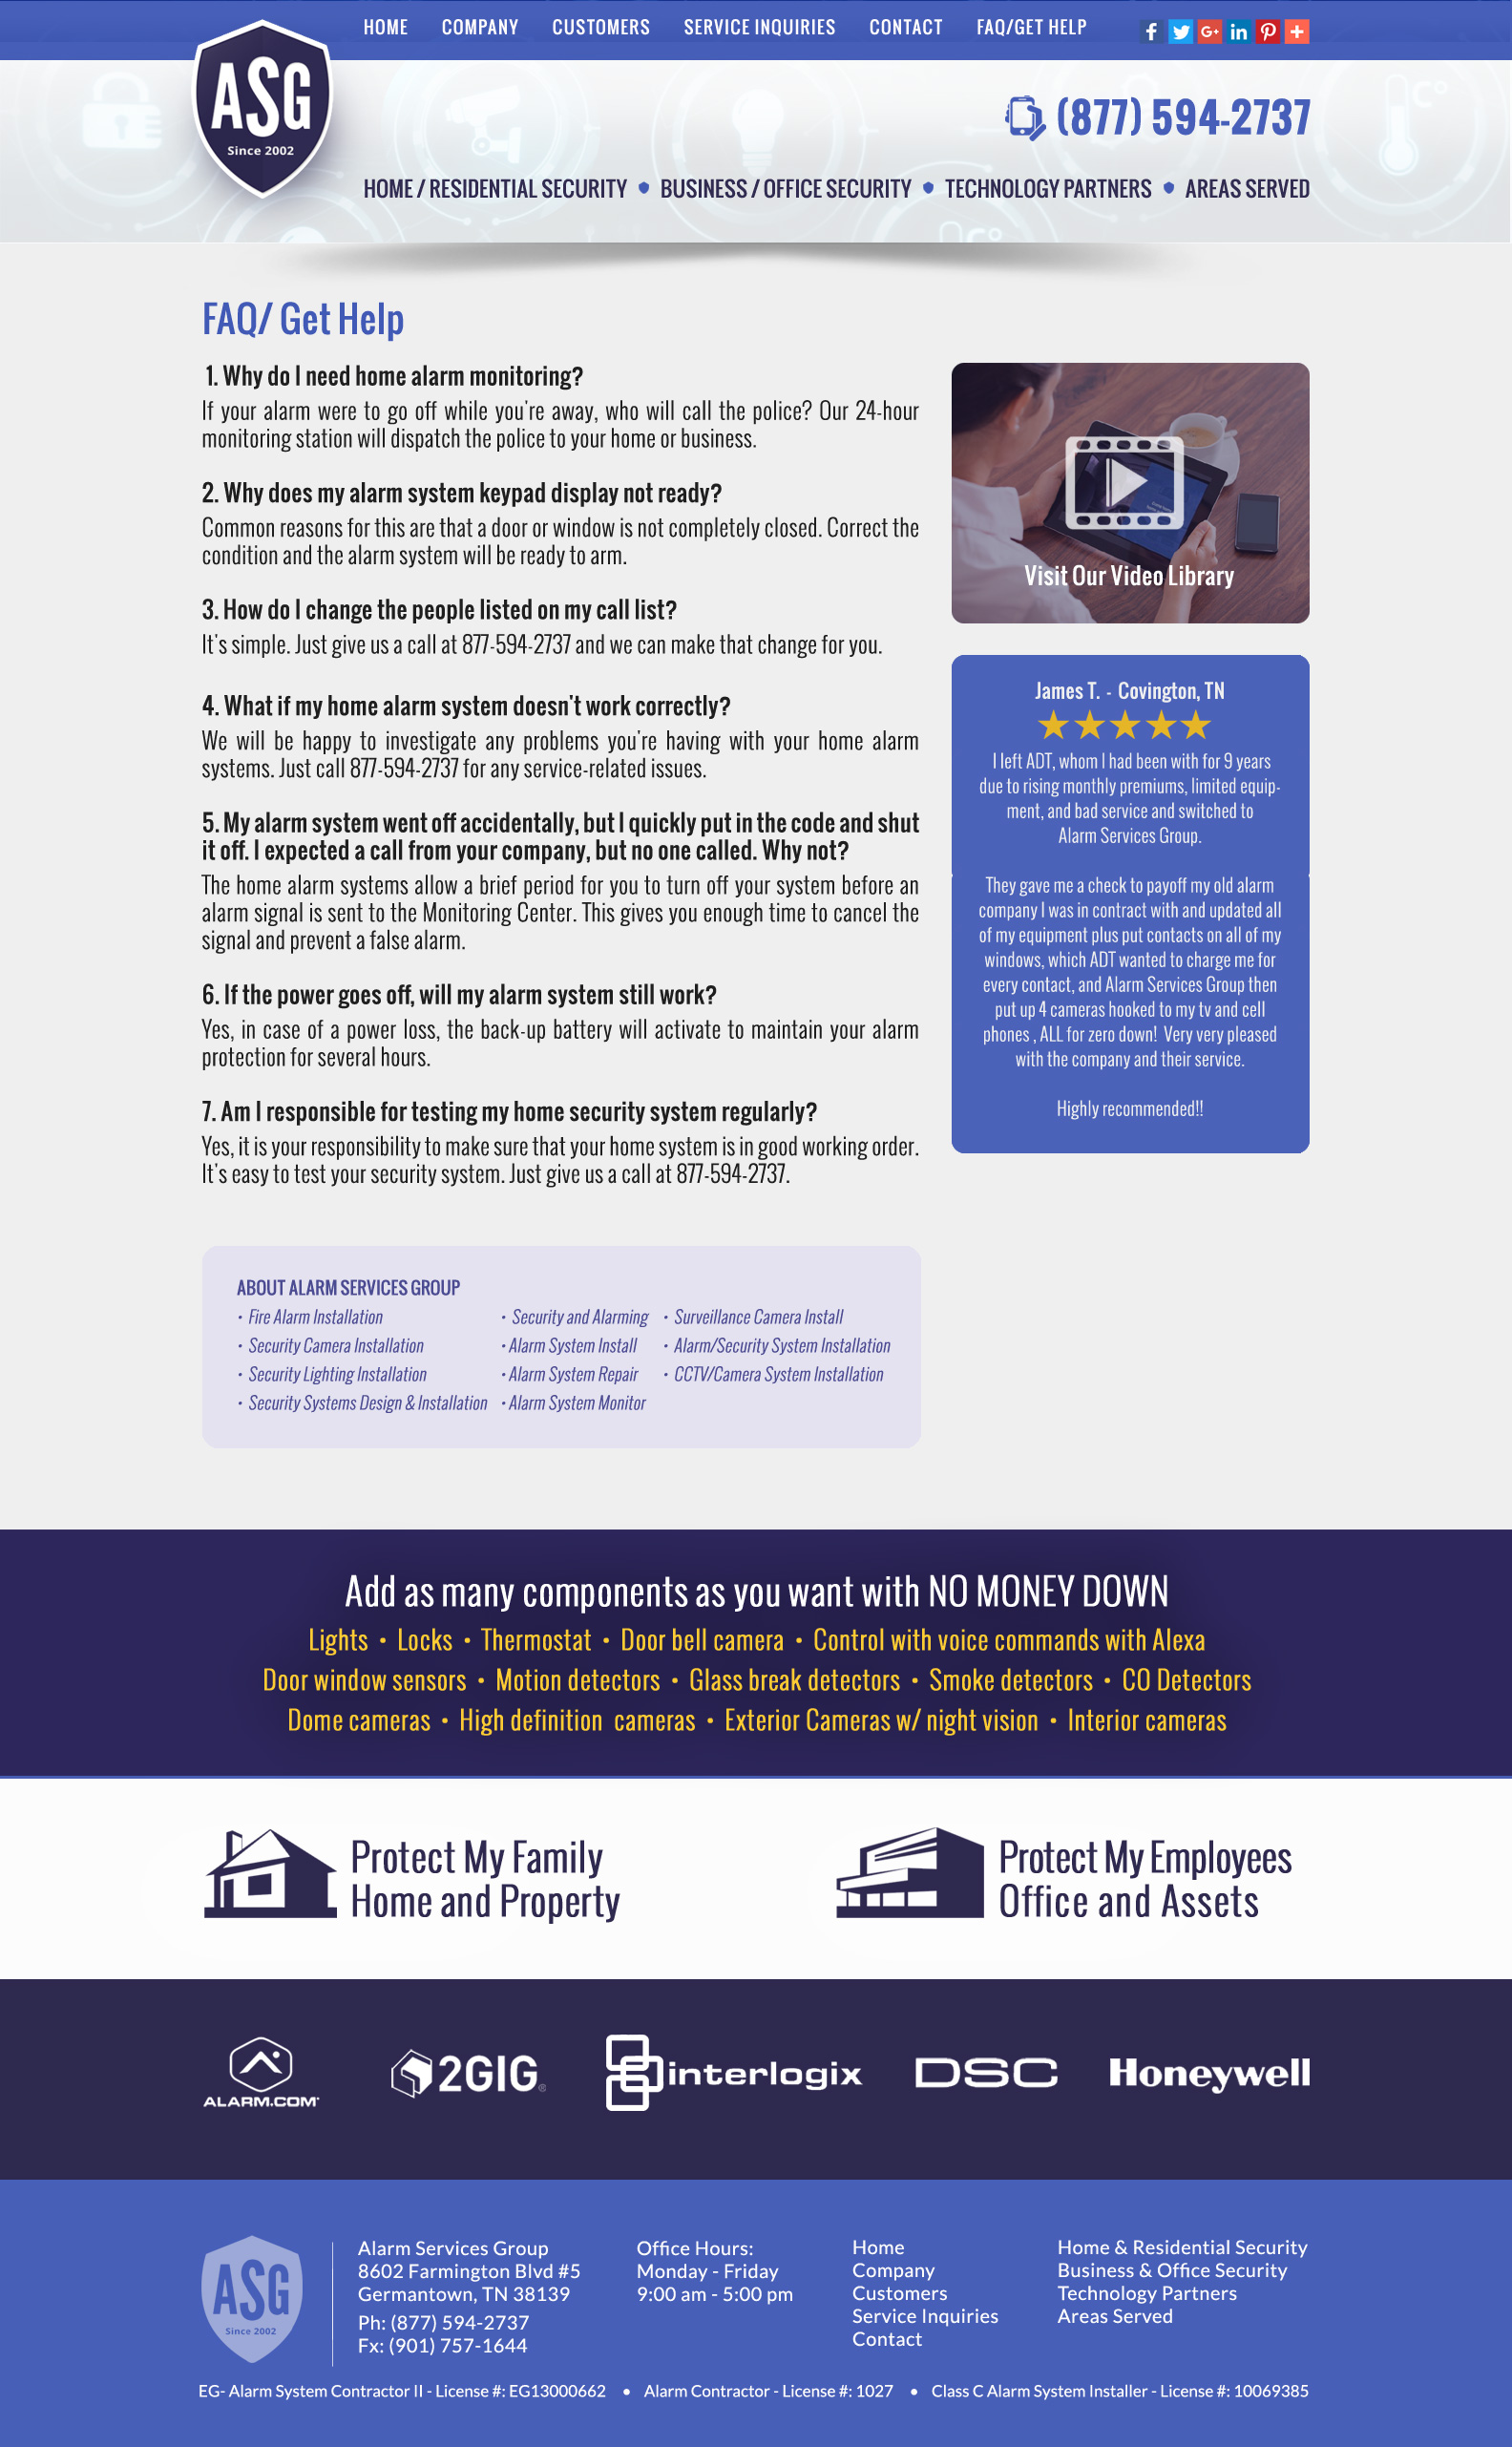 Website Design for home security companies | VISIONEFX